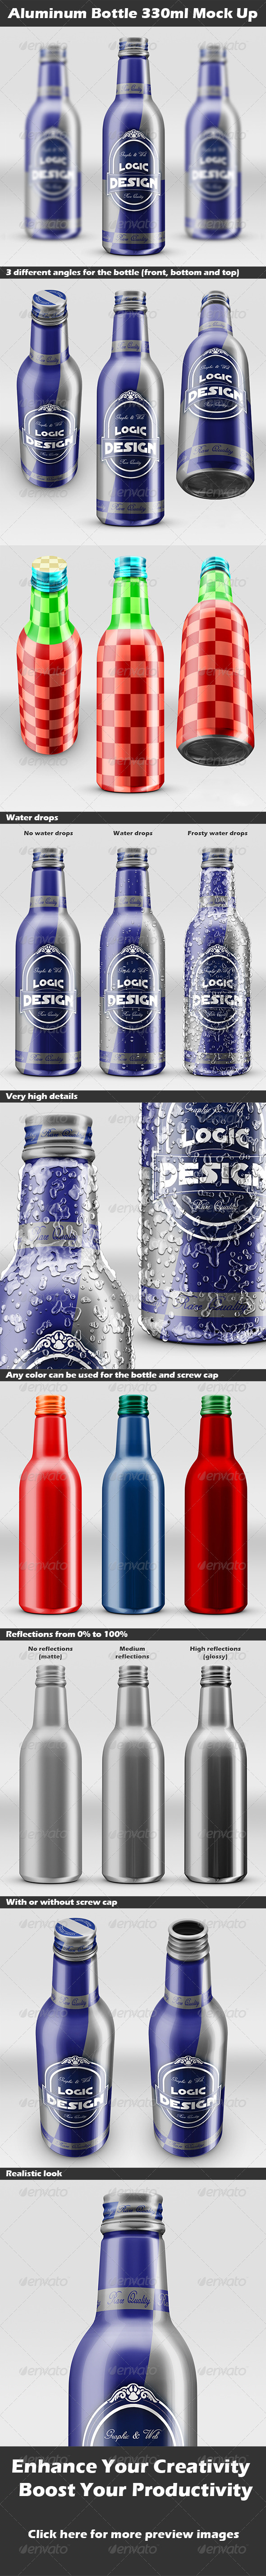 Aluminum Bottle 330ml Mock Up - Food and Drink Packaging